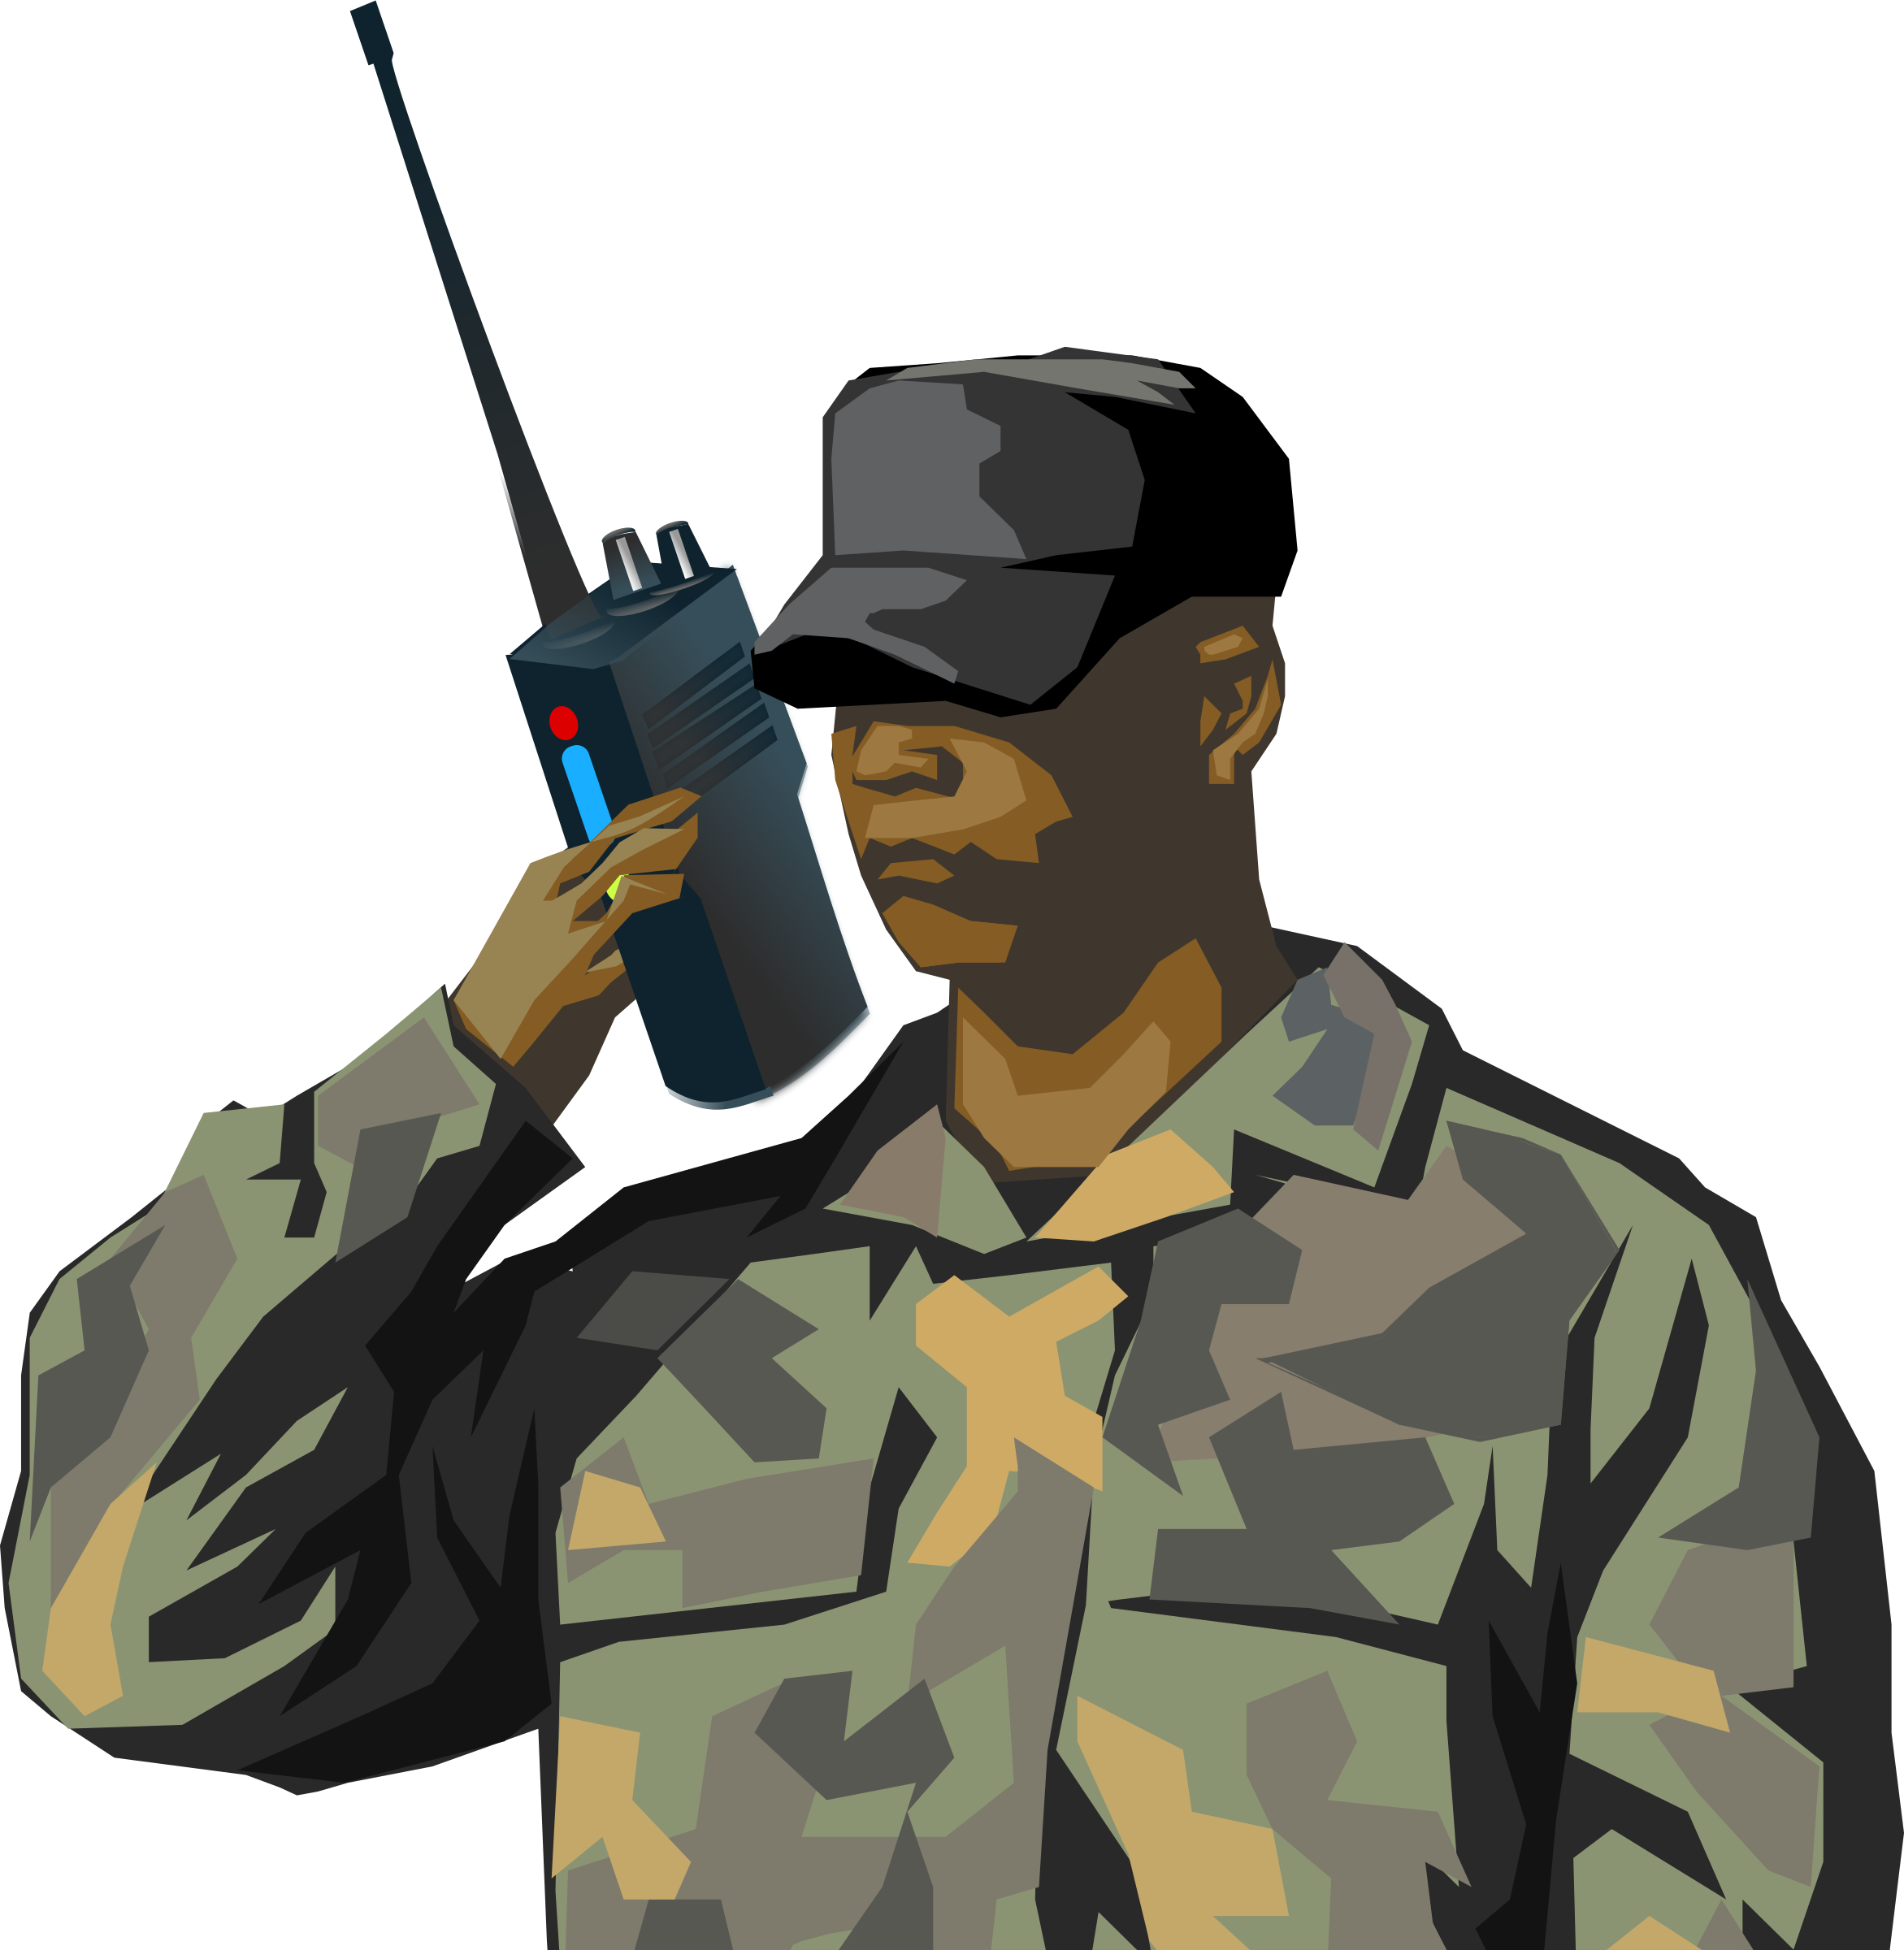 Soldier with walkie talkie radio by qubodup